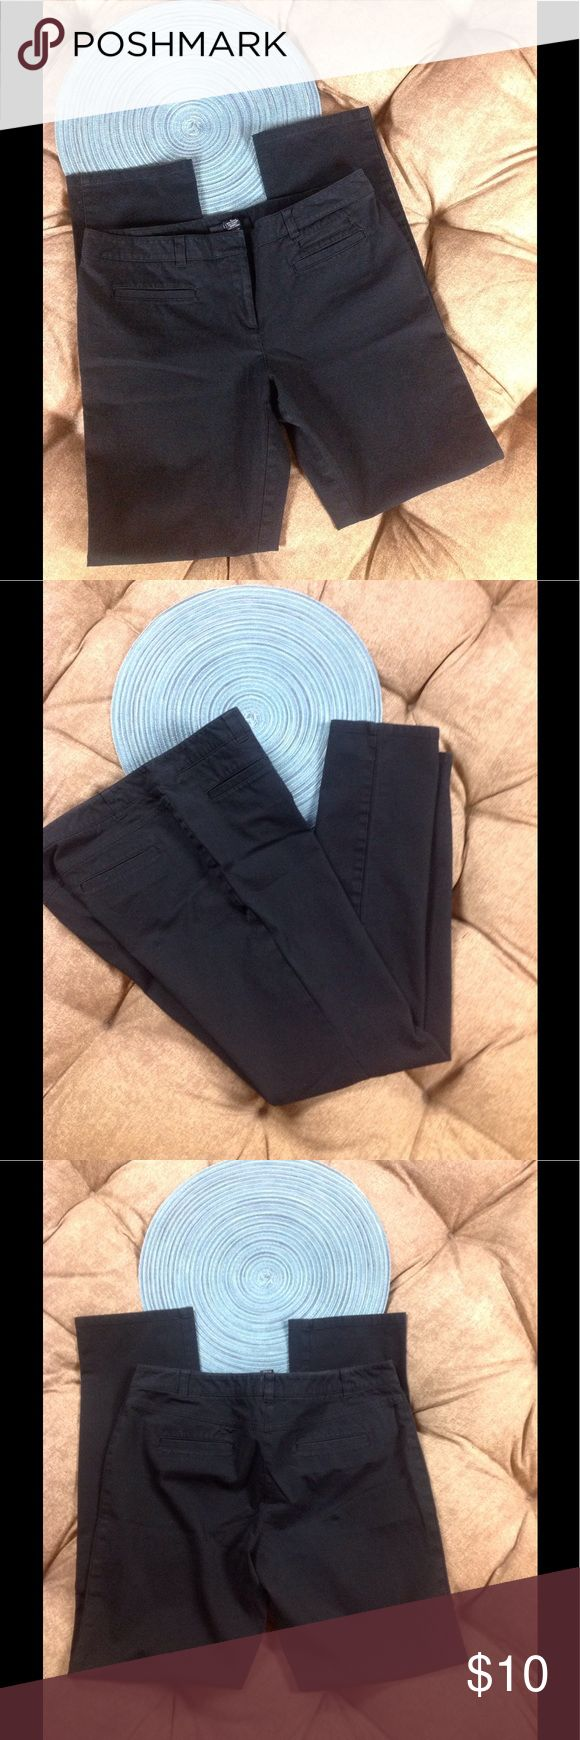 INC Dress Pants Stretchy Cotton Lycra Black SZ 8 Great Condition black small flat front/back pockets skinny fit 95/5 cotton/Lycra spandex 16 inches across waist 30 inch inseam 8 1/2 inch rise INC International Concepts Pants Skinny